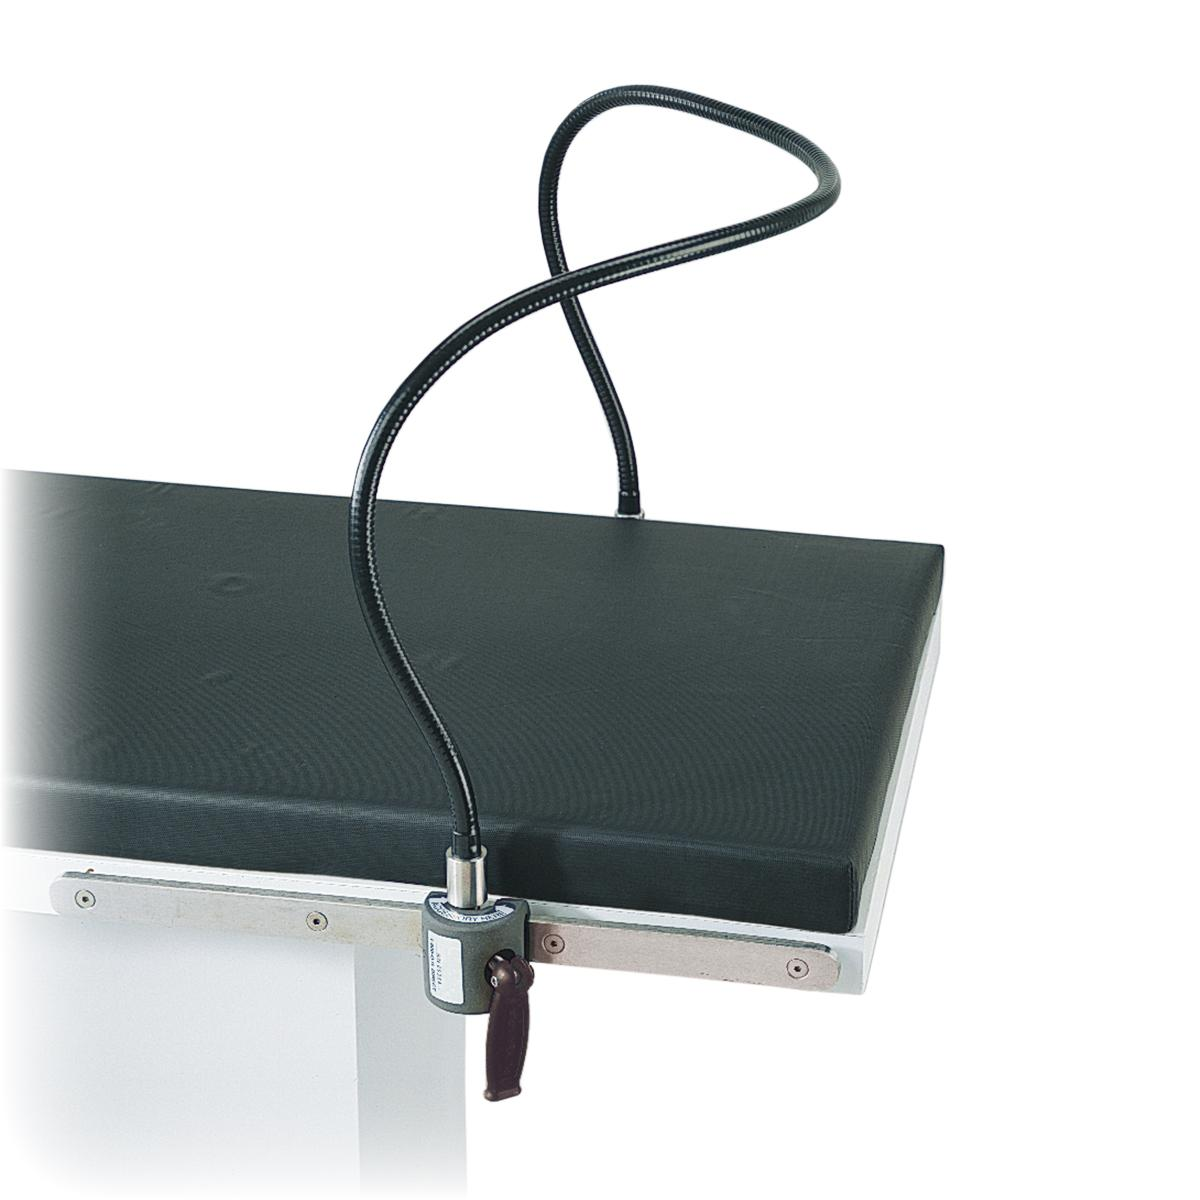 Flexible Anesthesia Screen side view on OR table